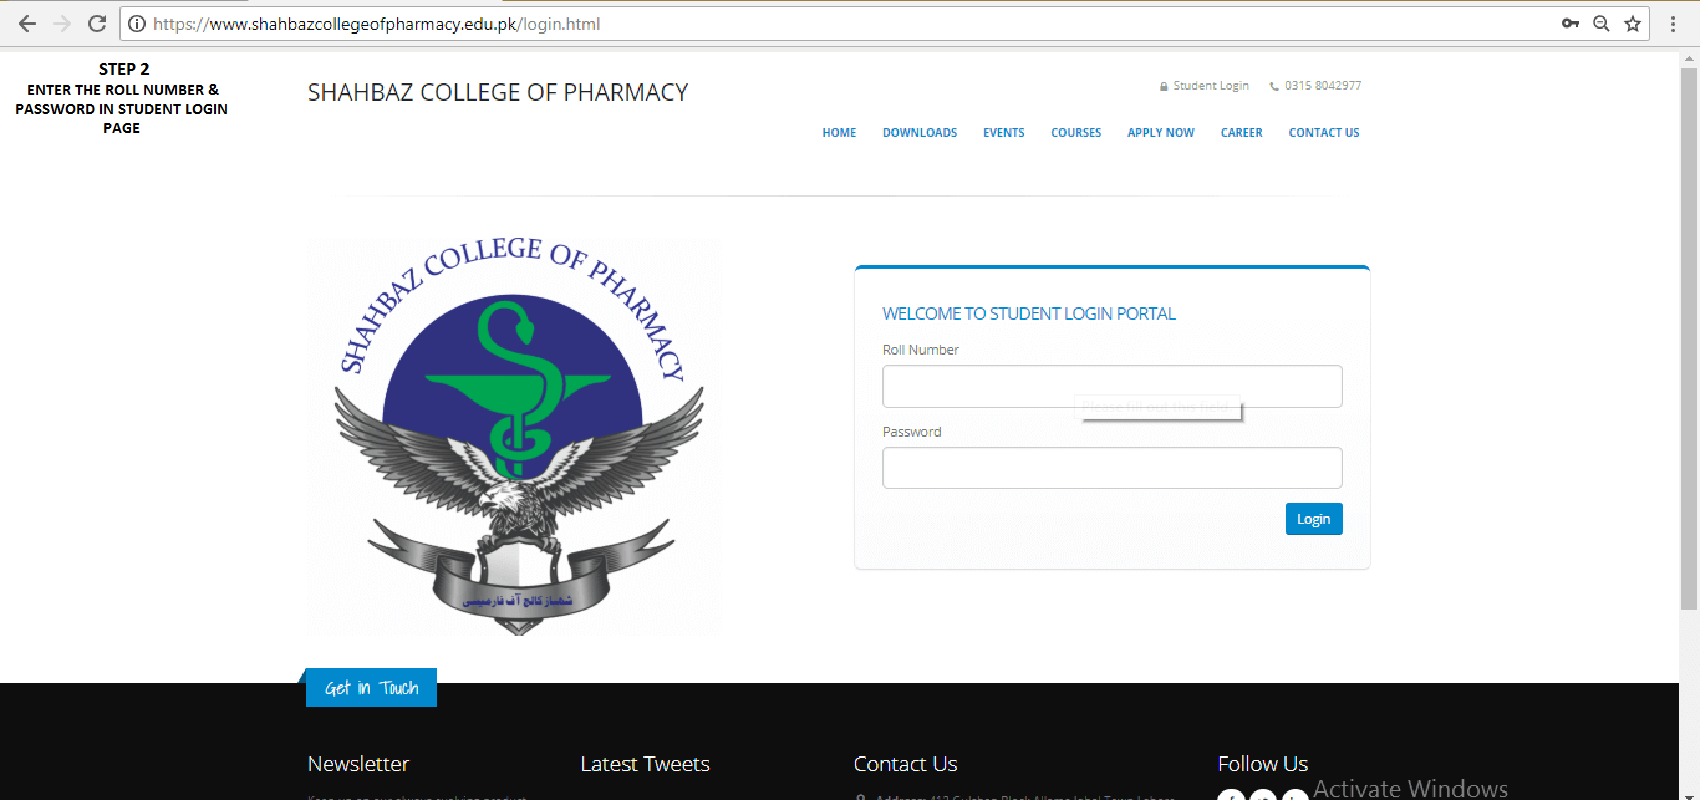 SHAHBAZ COLLEGE OF PHARMACY ONLINE PHARMACY TECHNICIAN STUDY STEP 2